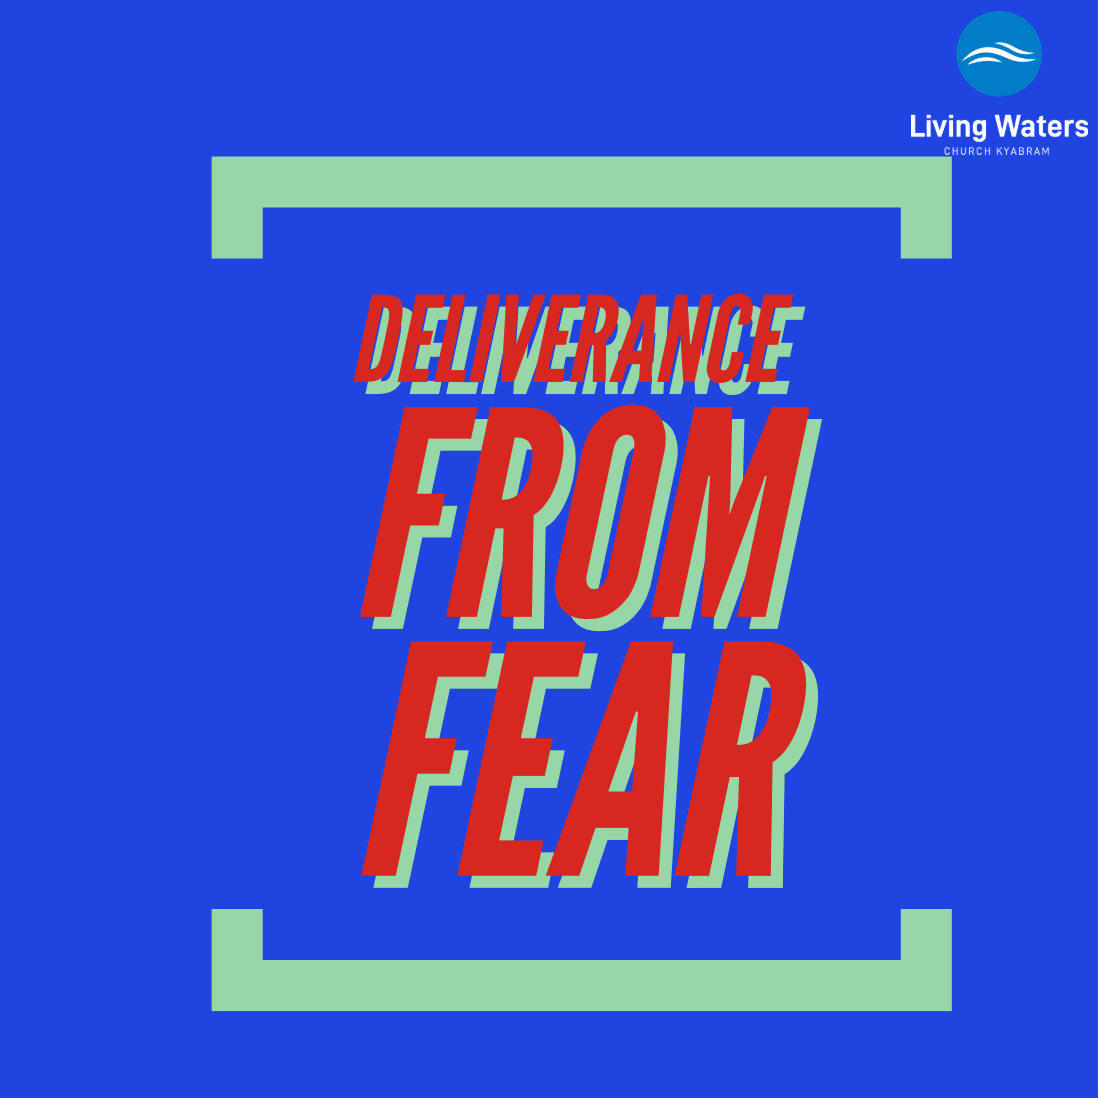 Deliverance from Fear